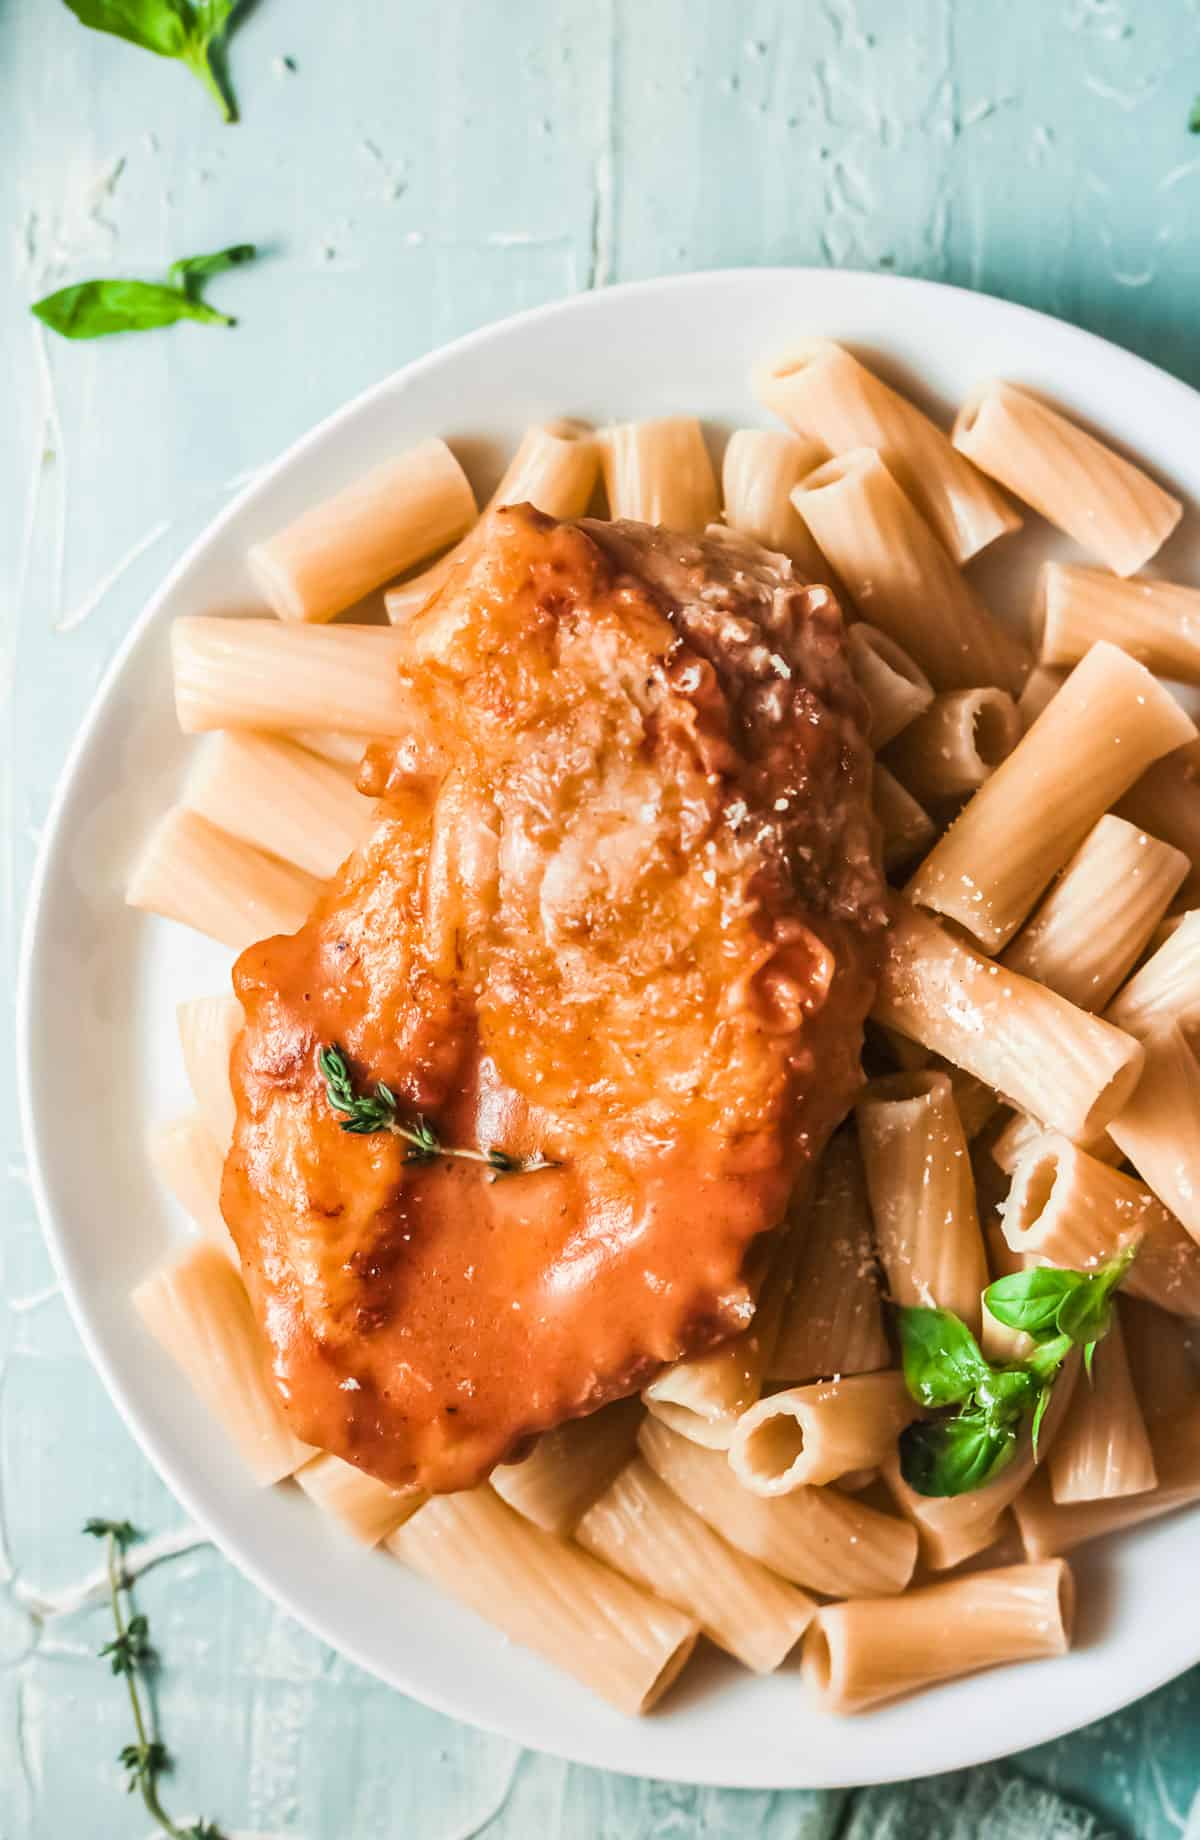 close up view of the completed cajun chicken recipe served over pasta on a white plate